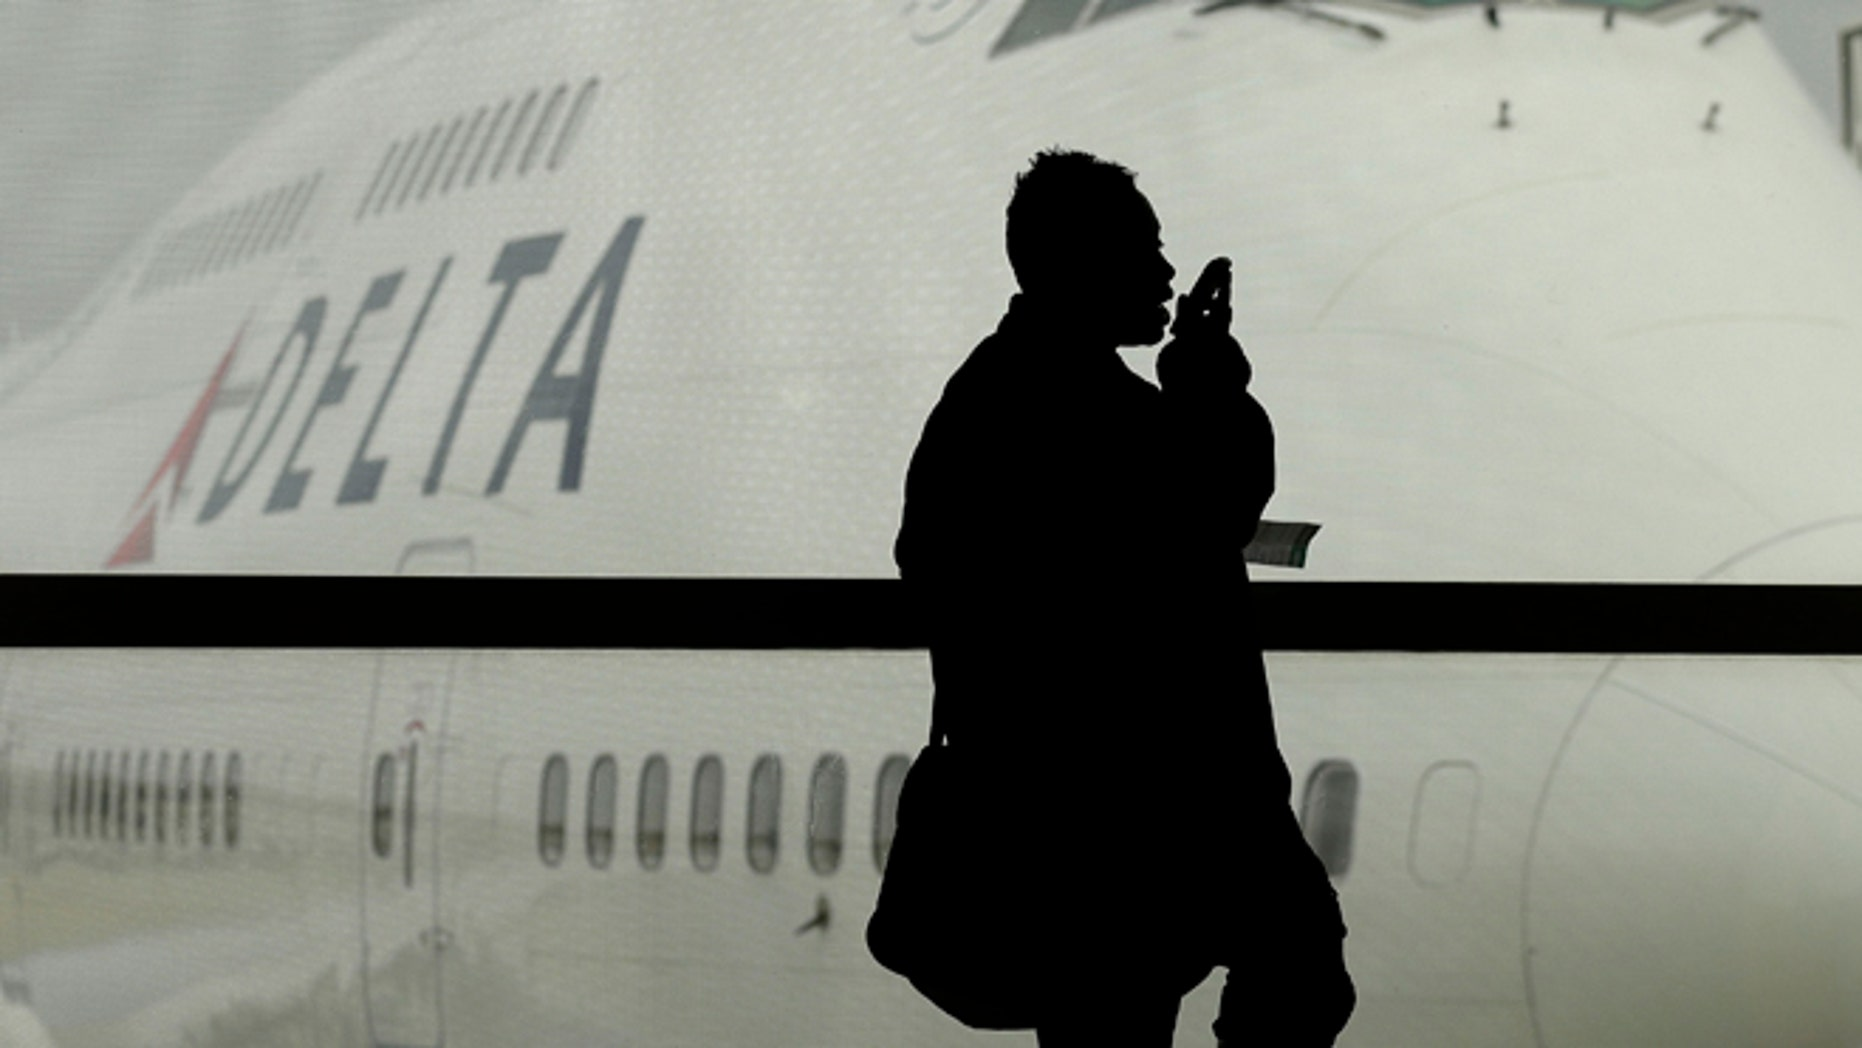 A traveler on Delta Airlines waits for her flight in Detroit. As federal regulators consider removing a decades-old prohibition on making phone calls on planes, a majority of air travelers oppose such a change, a recent poll found.